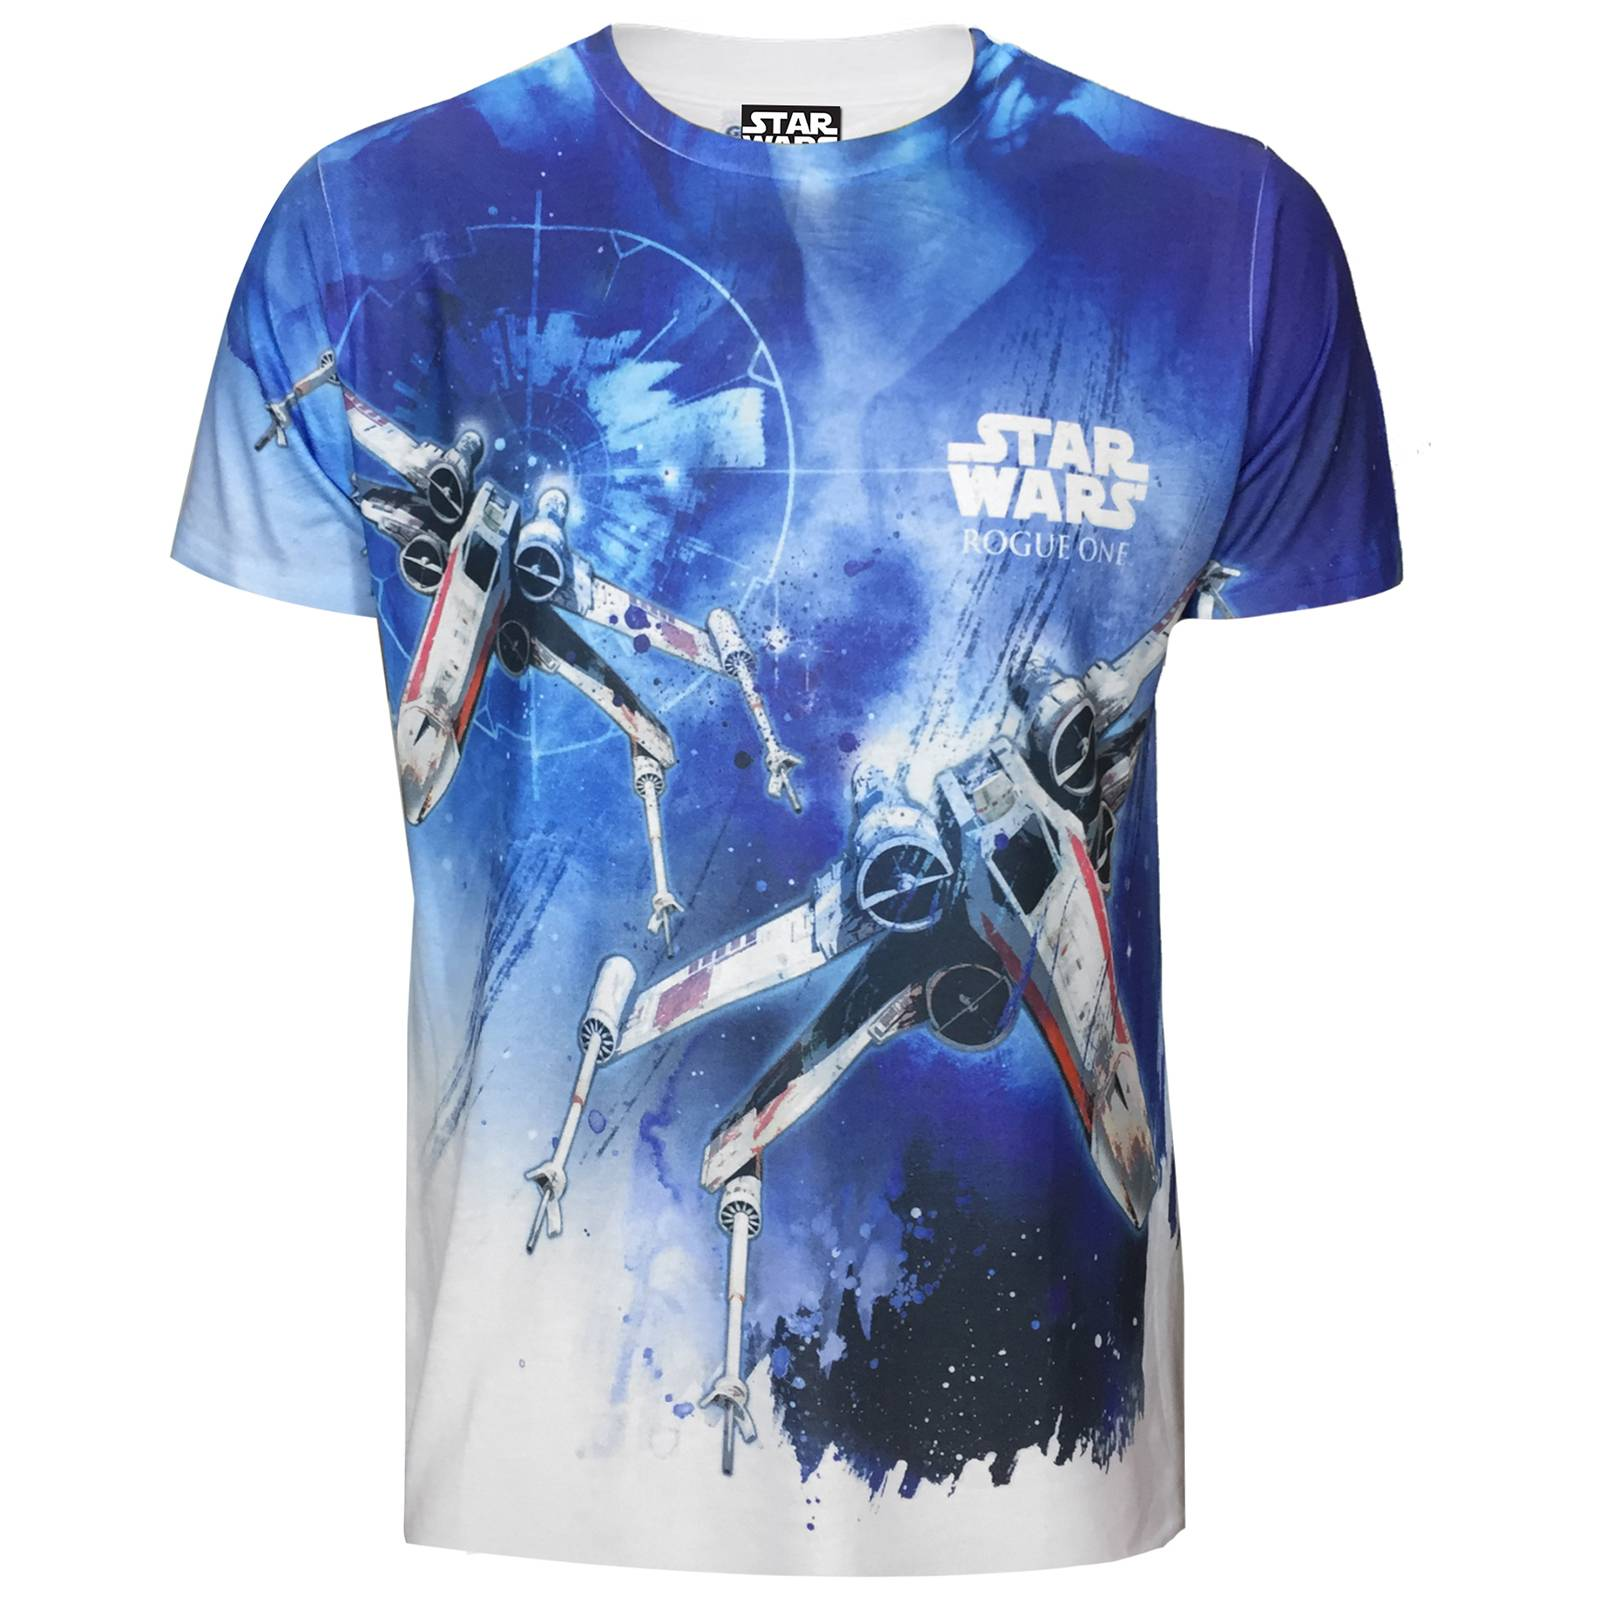 Geek Clothing Star Wars Rogue One Men's X - Wing Sublimation T-Shirt - White - S - White